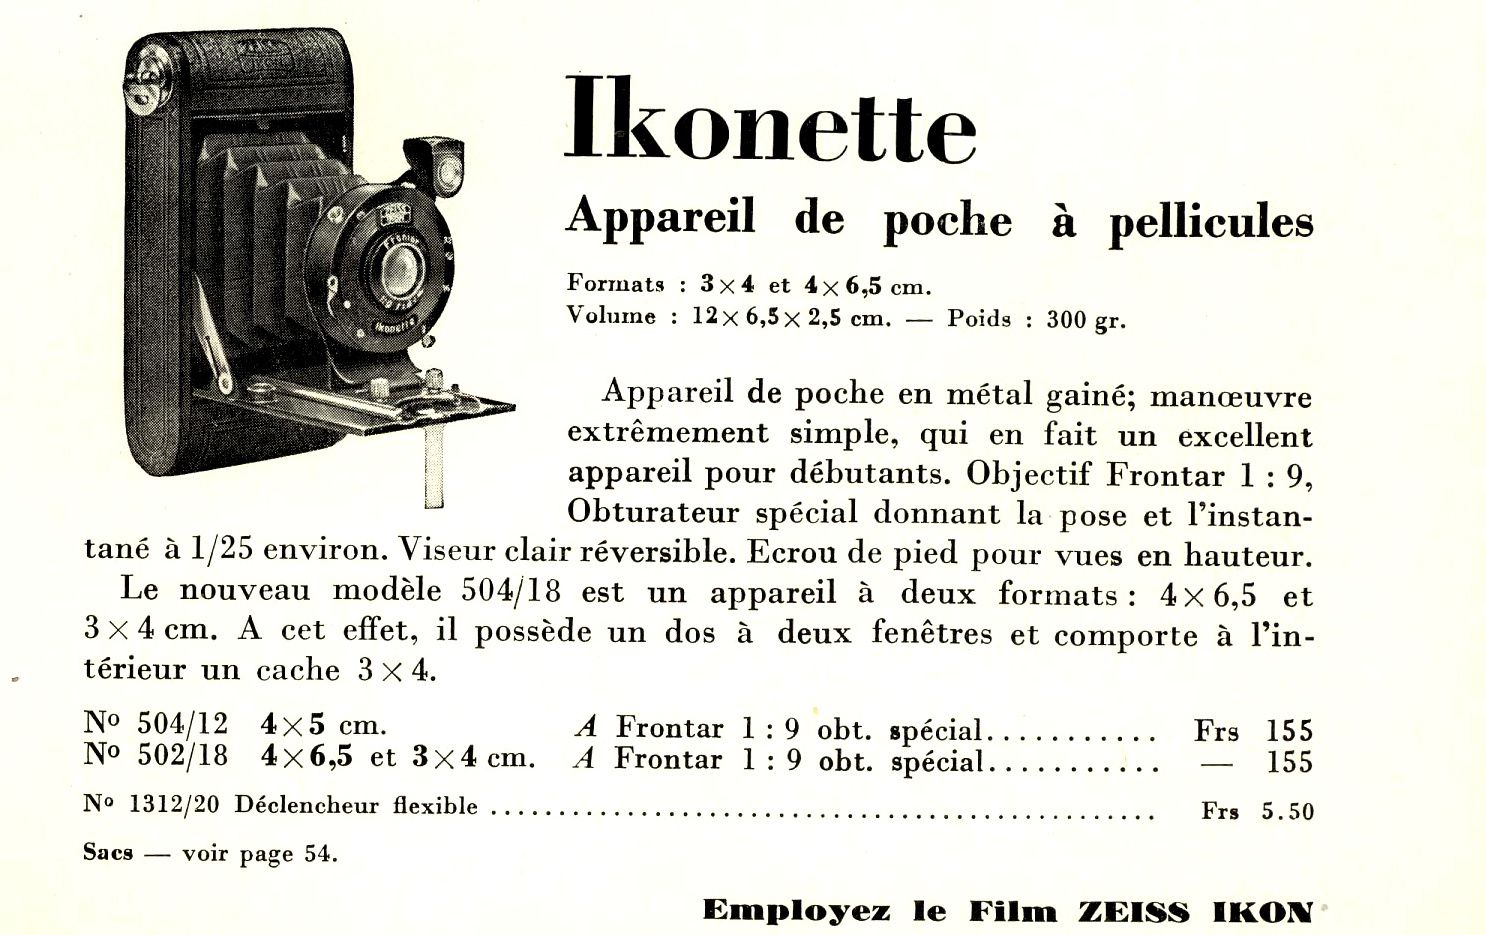 Zeiss-Ikon, folding Ikonette